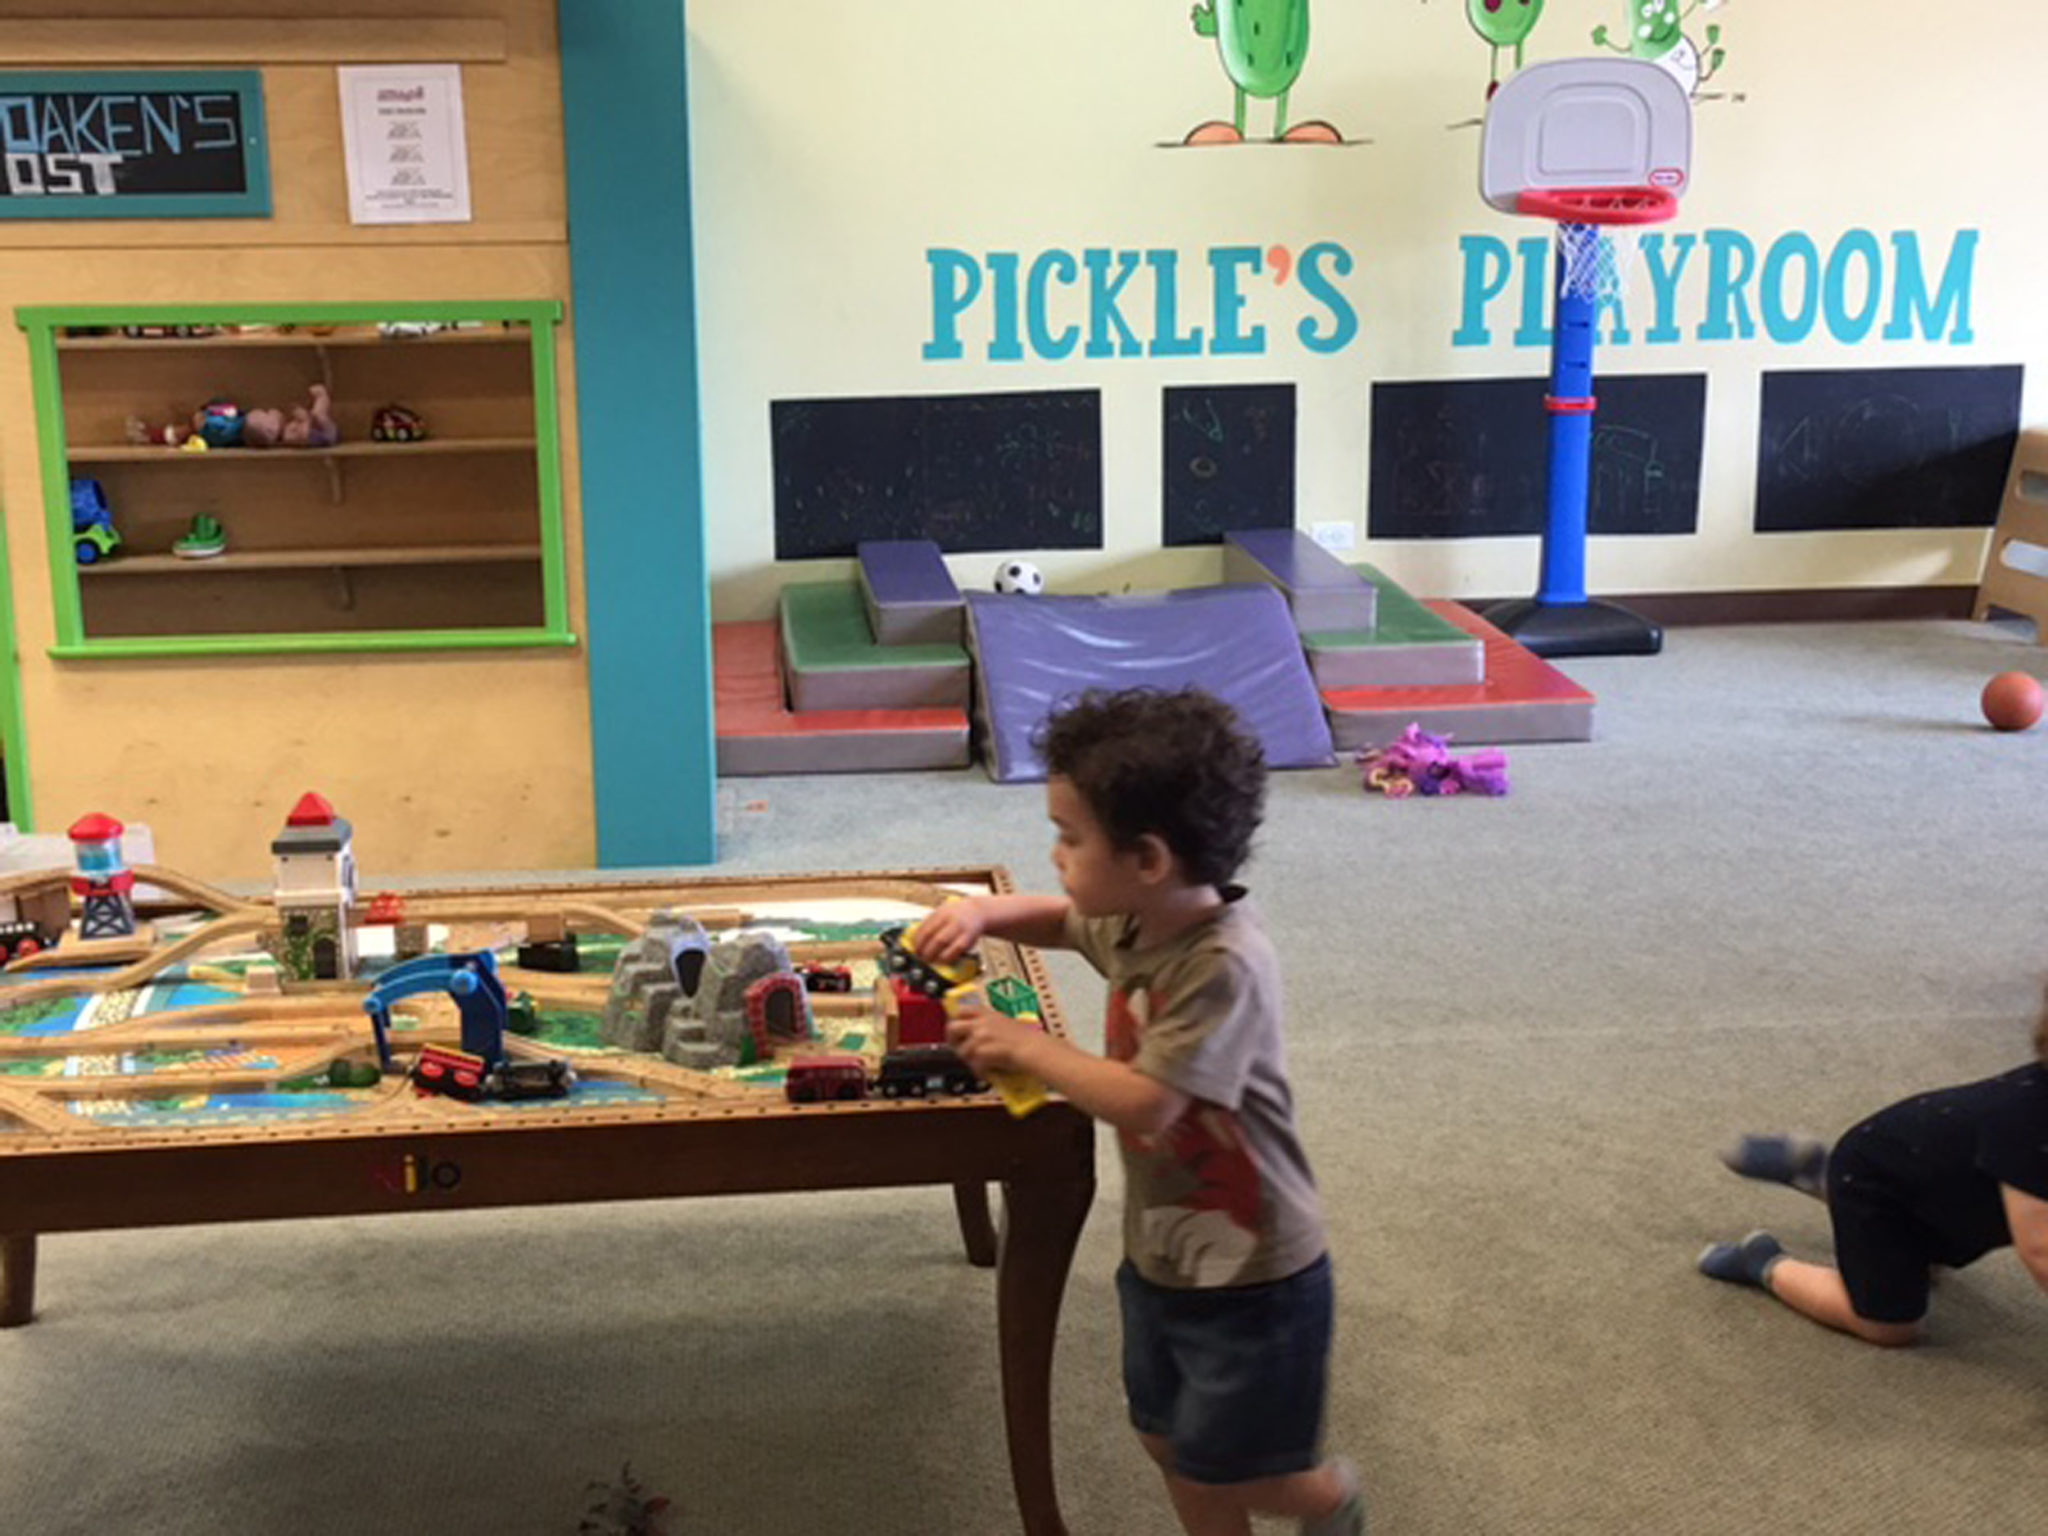 Pickle's Playroom sponsors LGBT family events like the 2016 Family Pride Fest! Photo credit Theresa Volpe